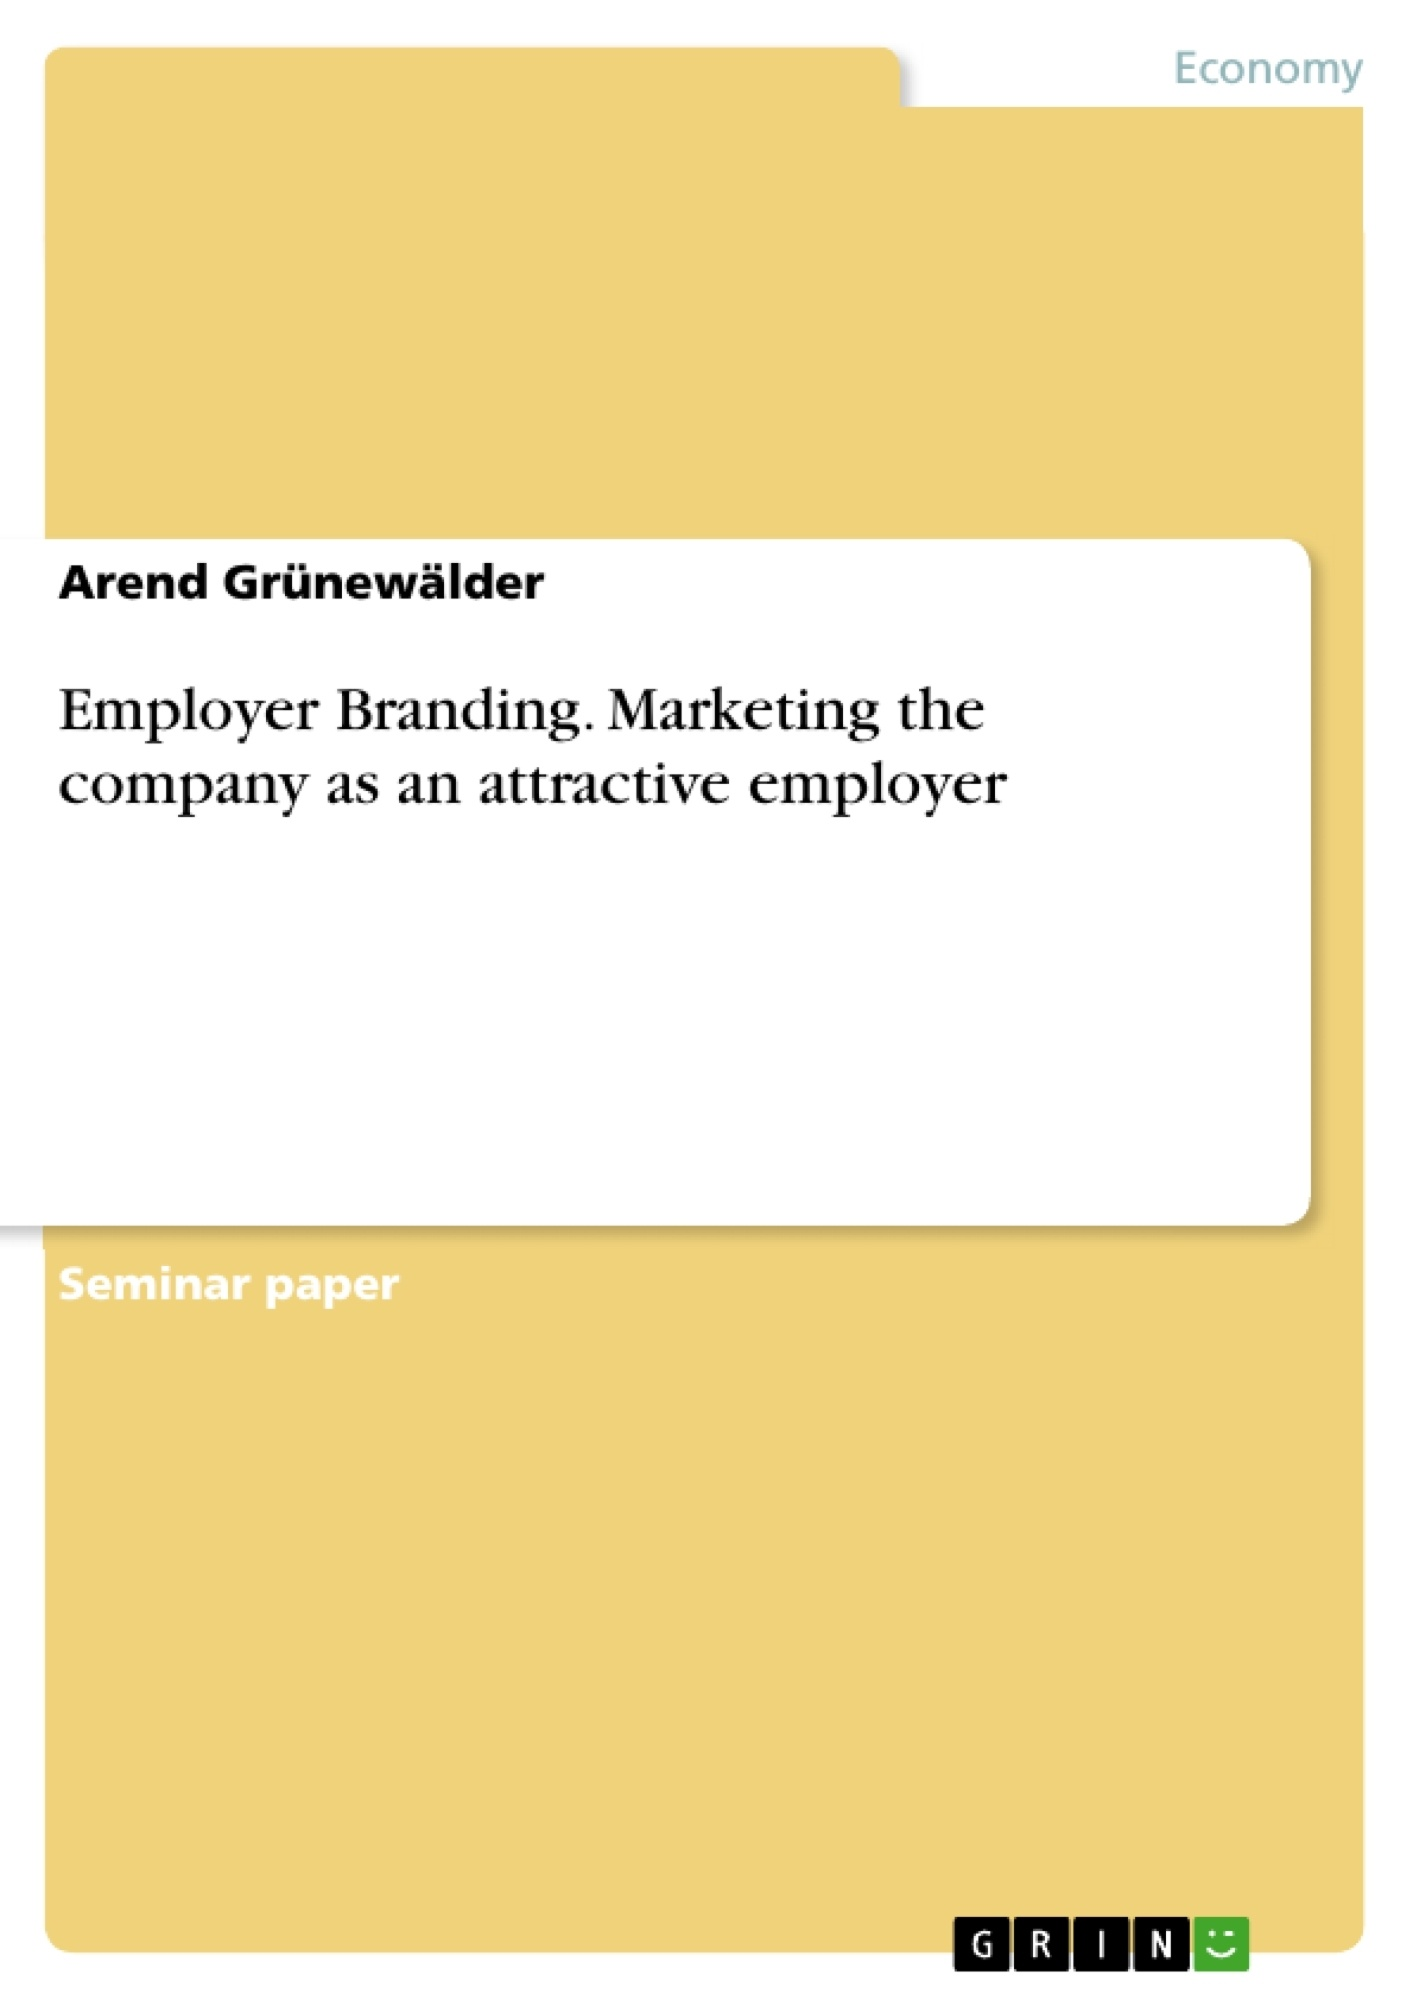 Title: Employer Branding. Marketing the company as an attractive employer